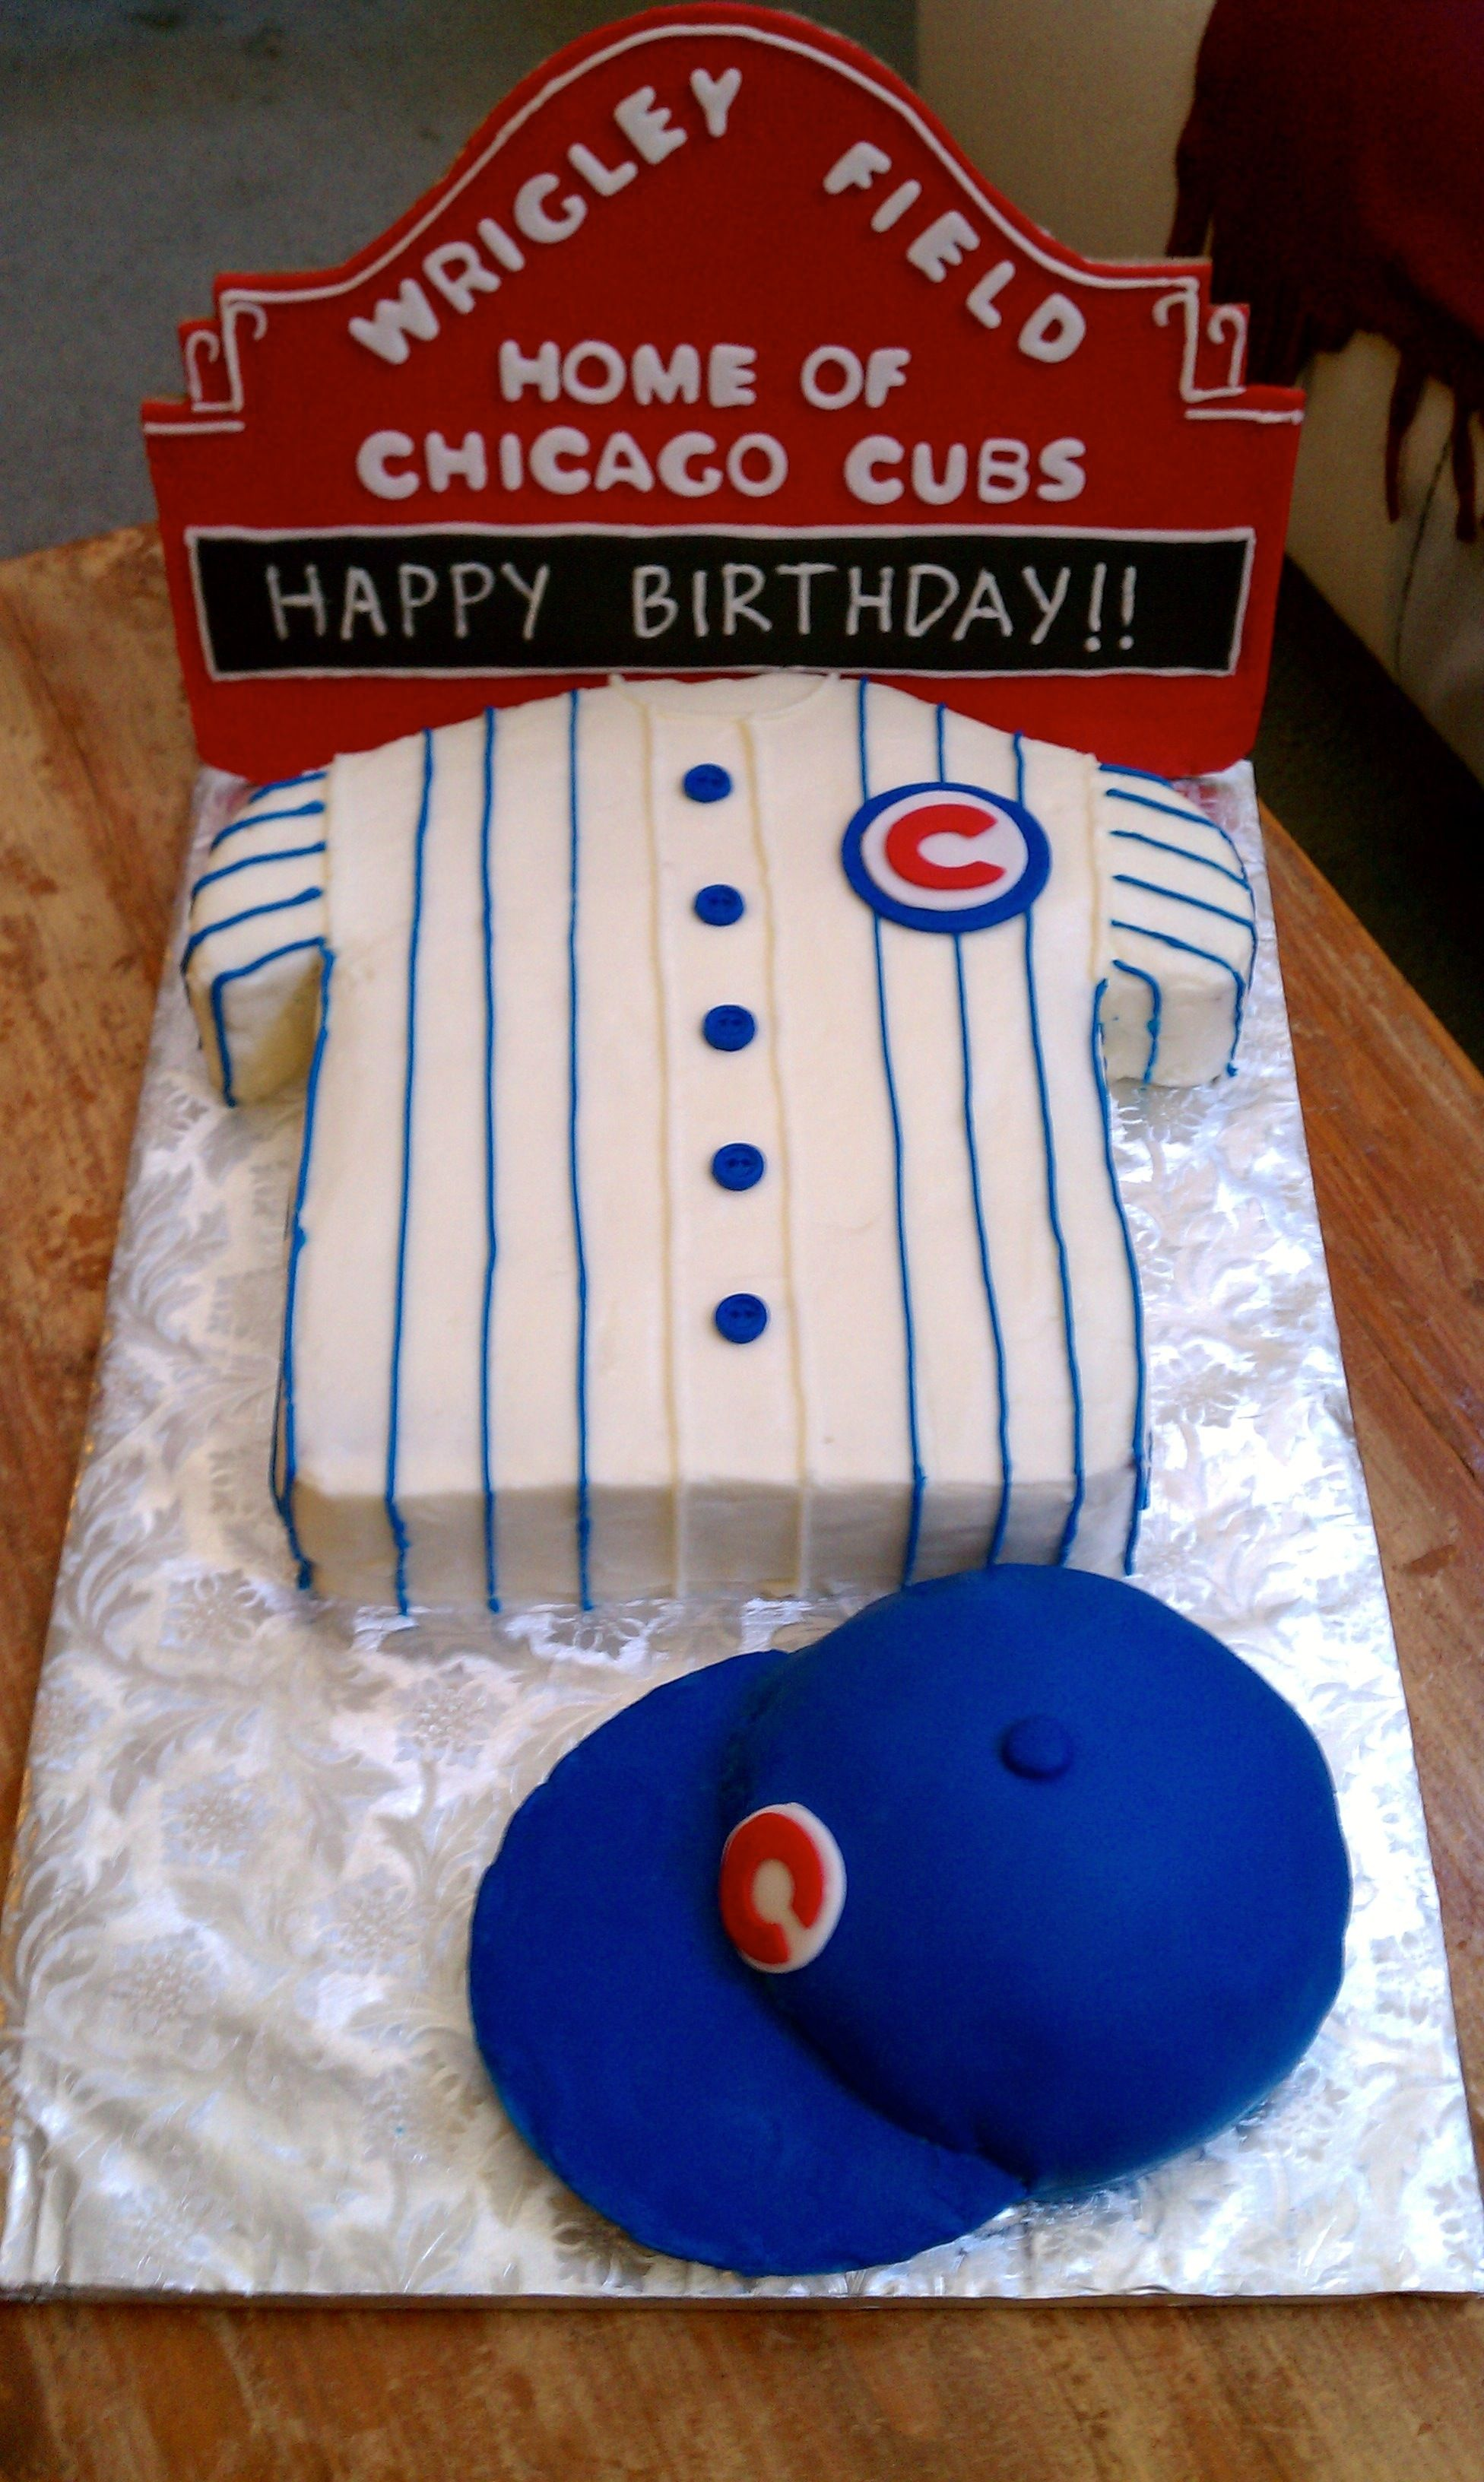 Chicago Cubs Wrigley Field Birthday Cake With Baseball Cap